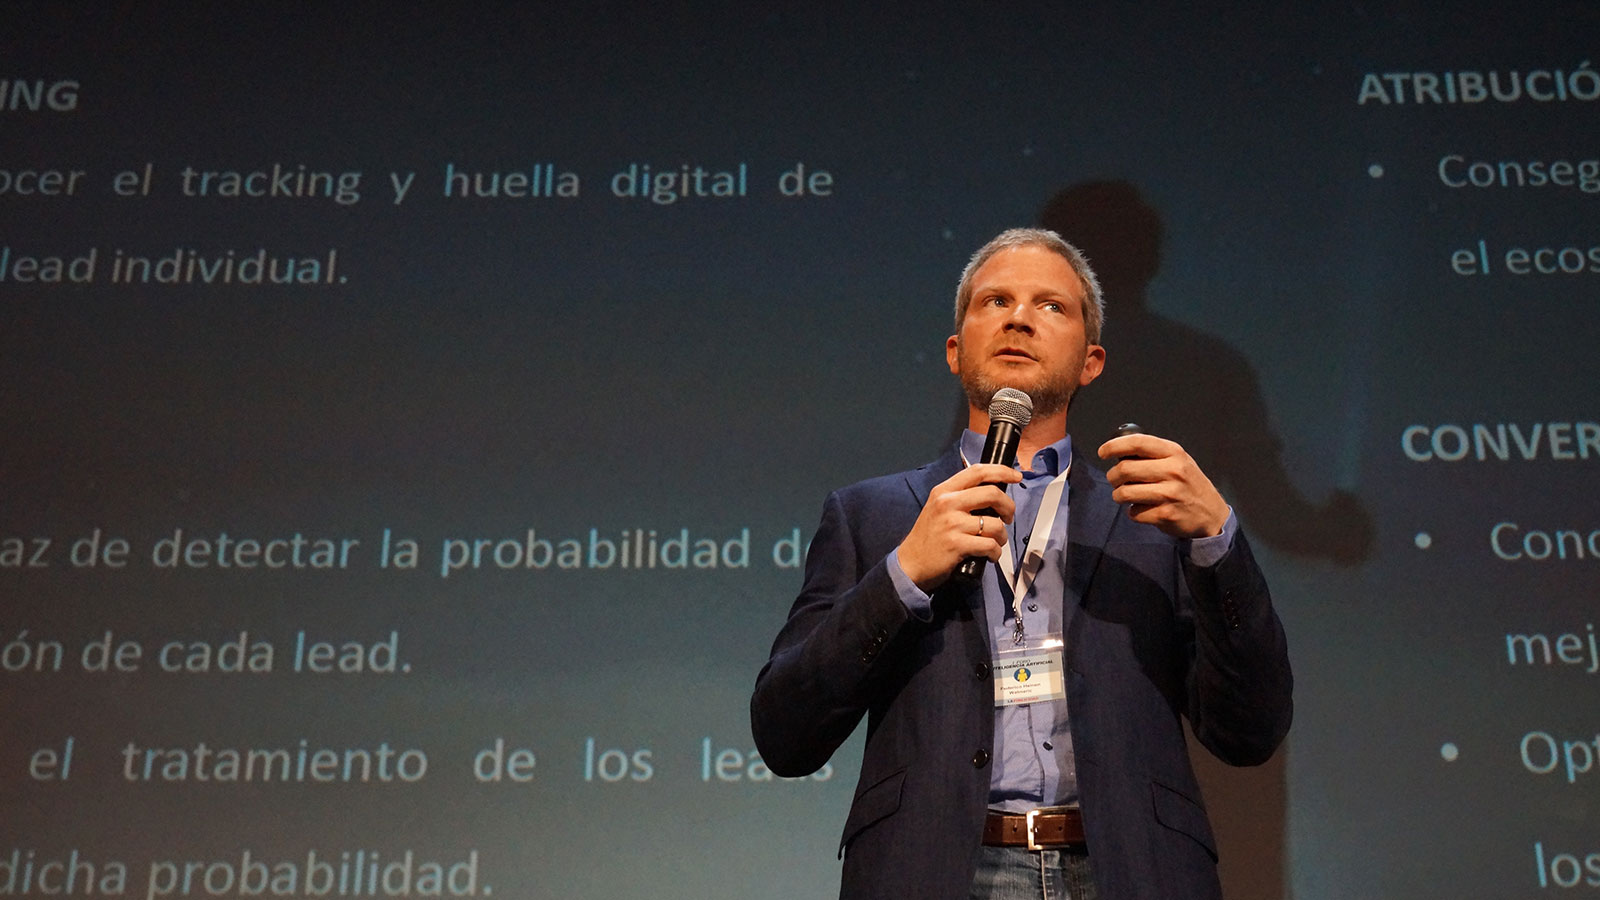 Federico Heinen, Product and Innovation Director at Walmeric, in Foro IA